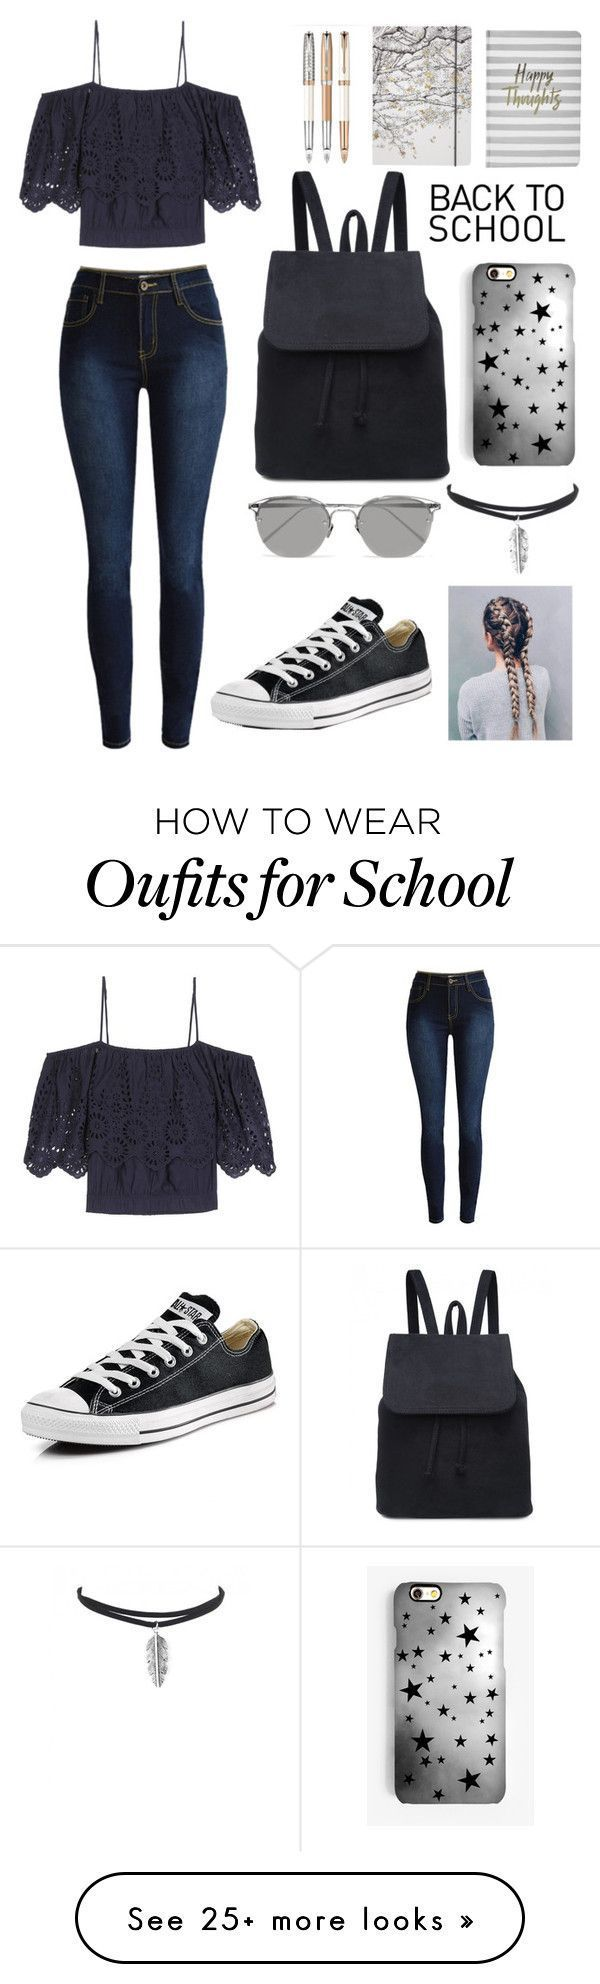 Back To School Outfit by kirsty-mckenzie44 on Polyvore with Ganni, Boohoo